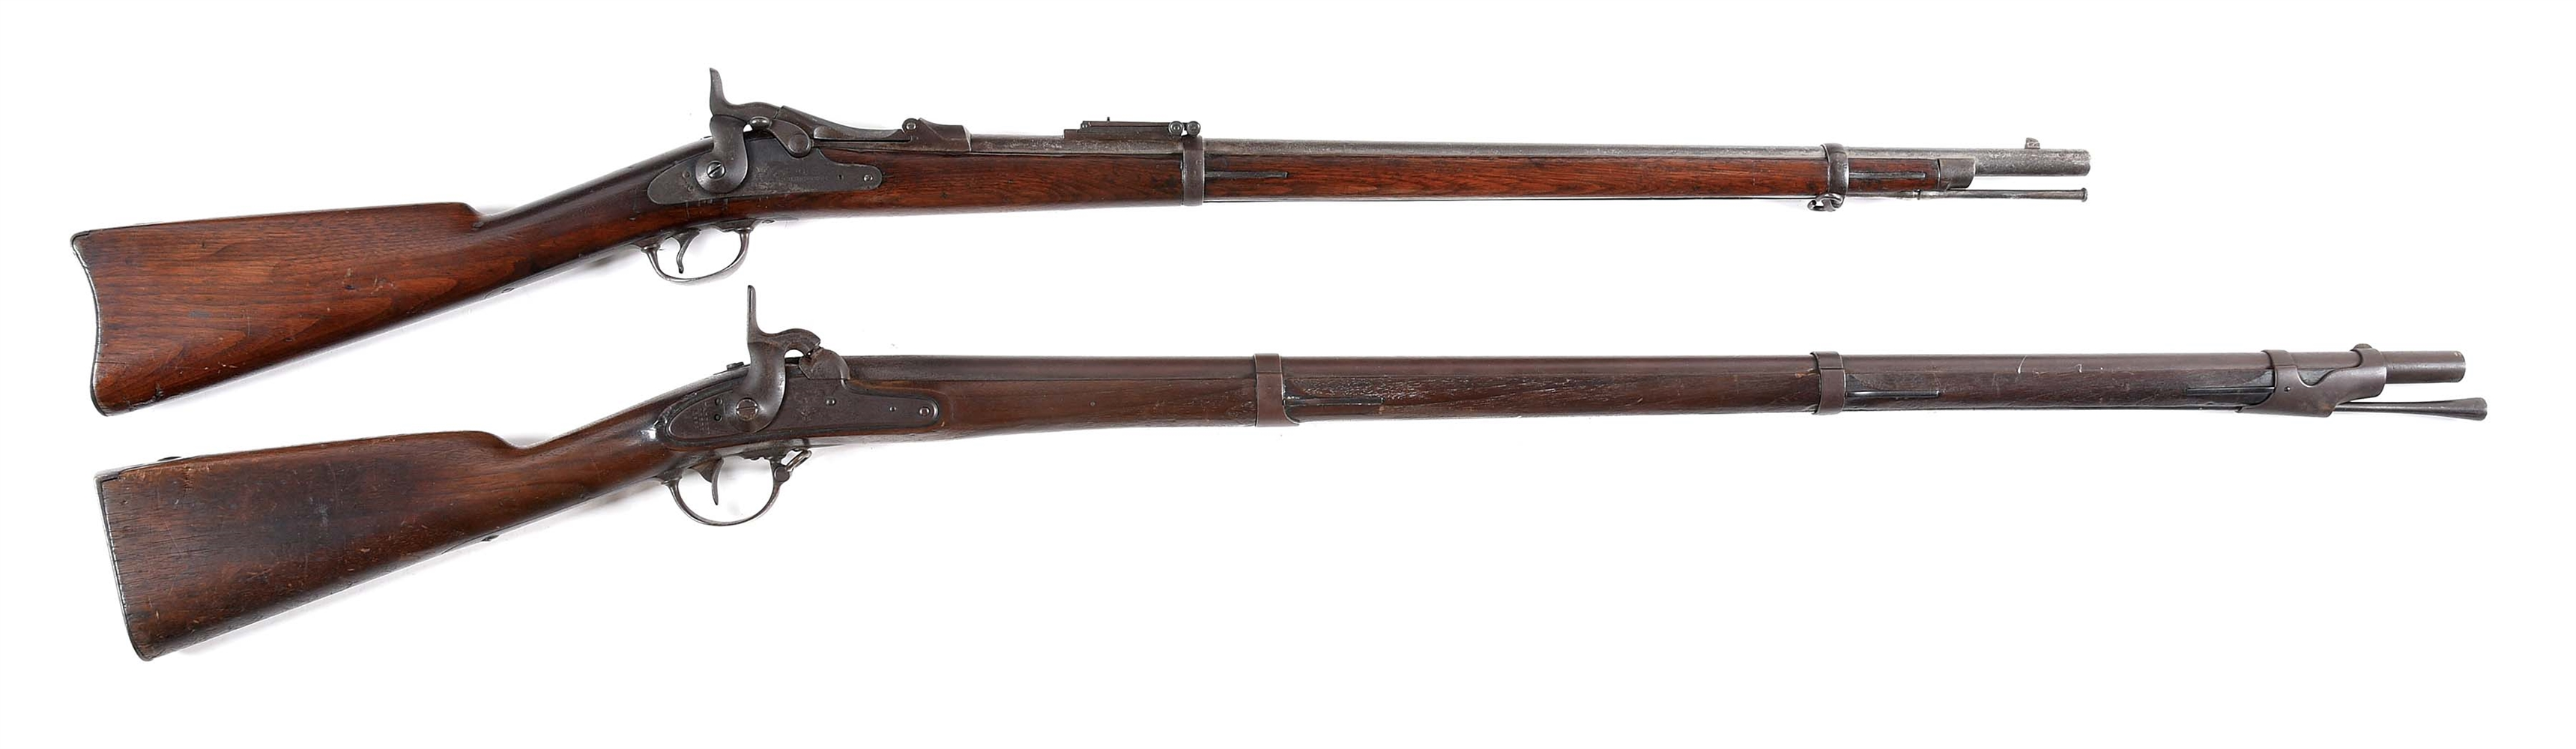 (A) LOT OF 2: SPRINGFIELD 84 AND HARPERS FERRY 1842 PERCUSSION RIFLES.